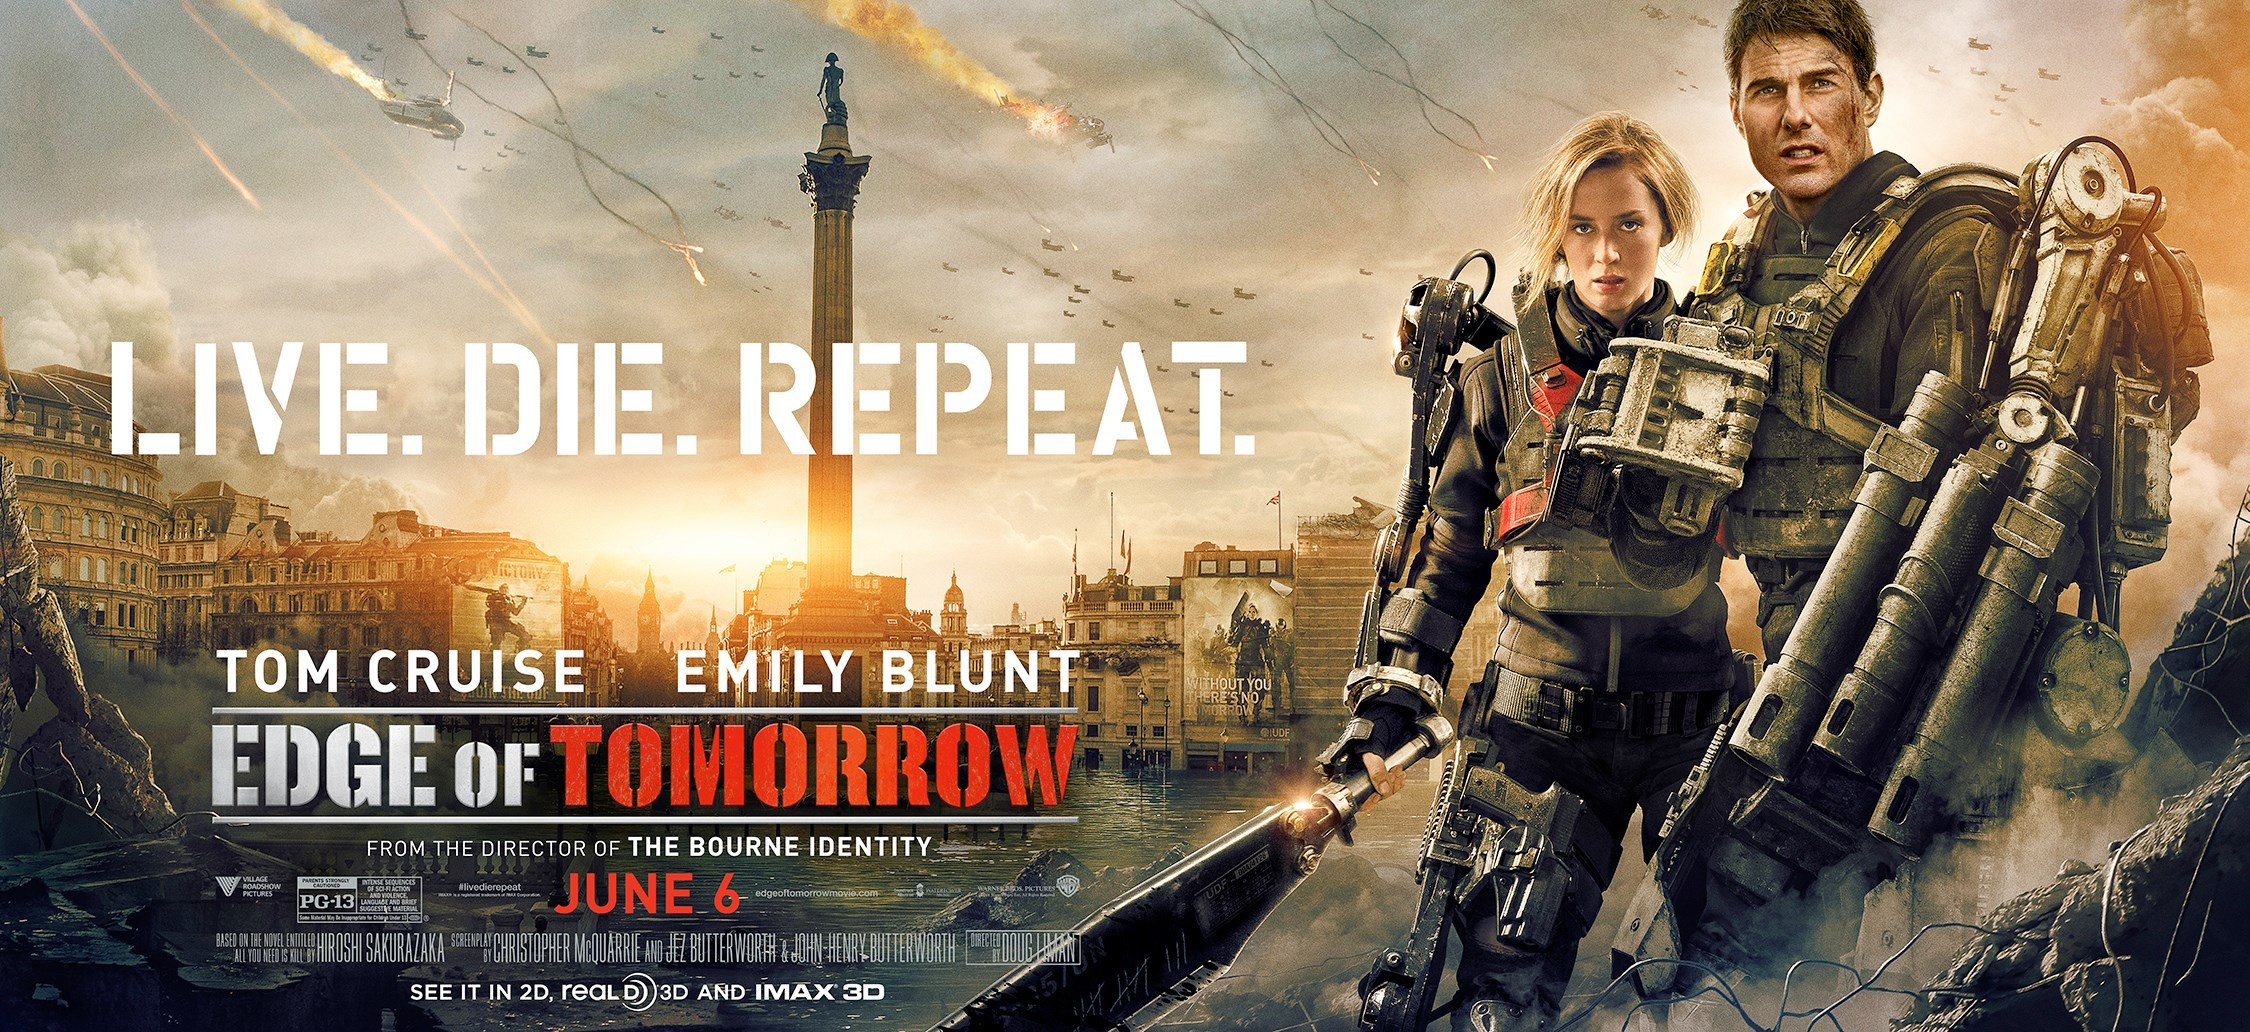 EDGE OF TOMORROW-Official Poster Banner PROMO XXLG-29ABRIL2014